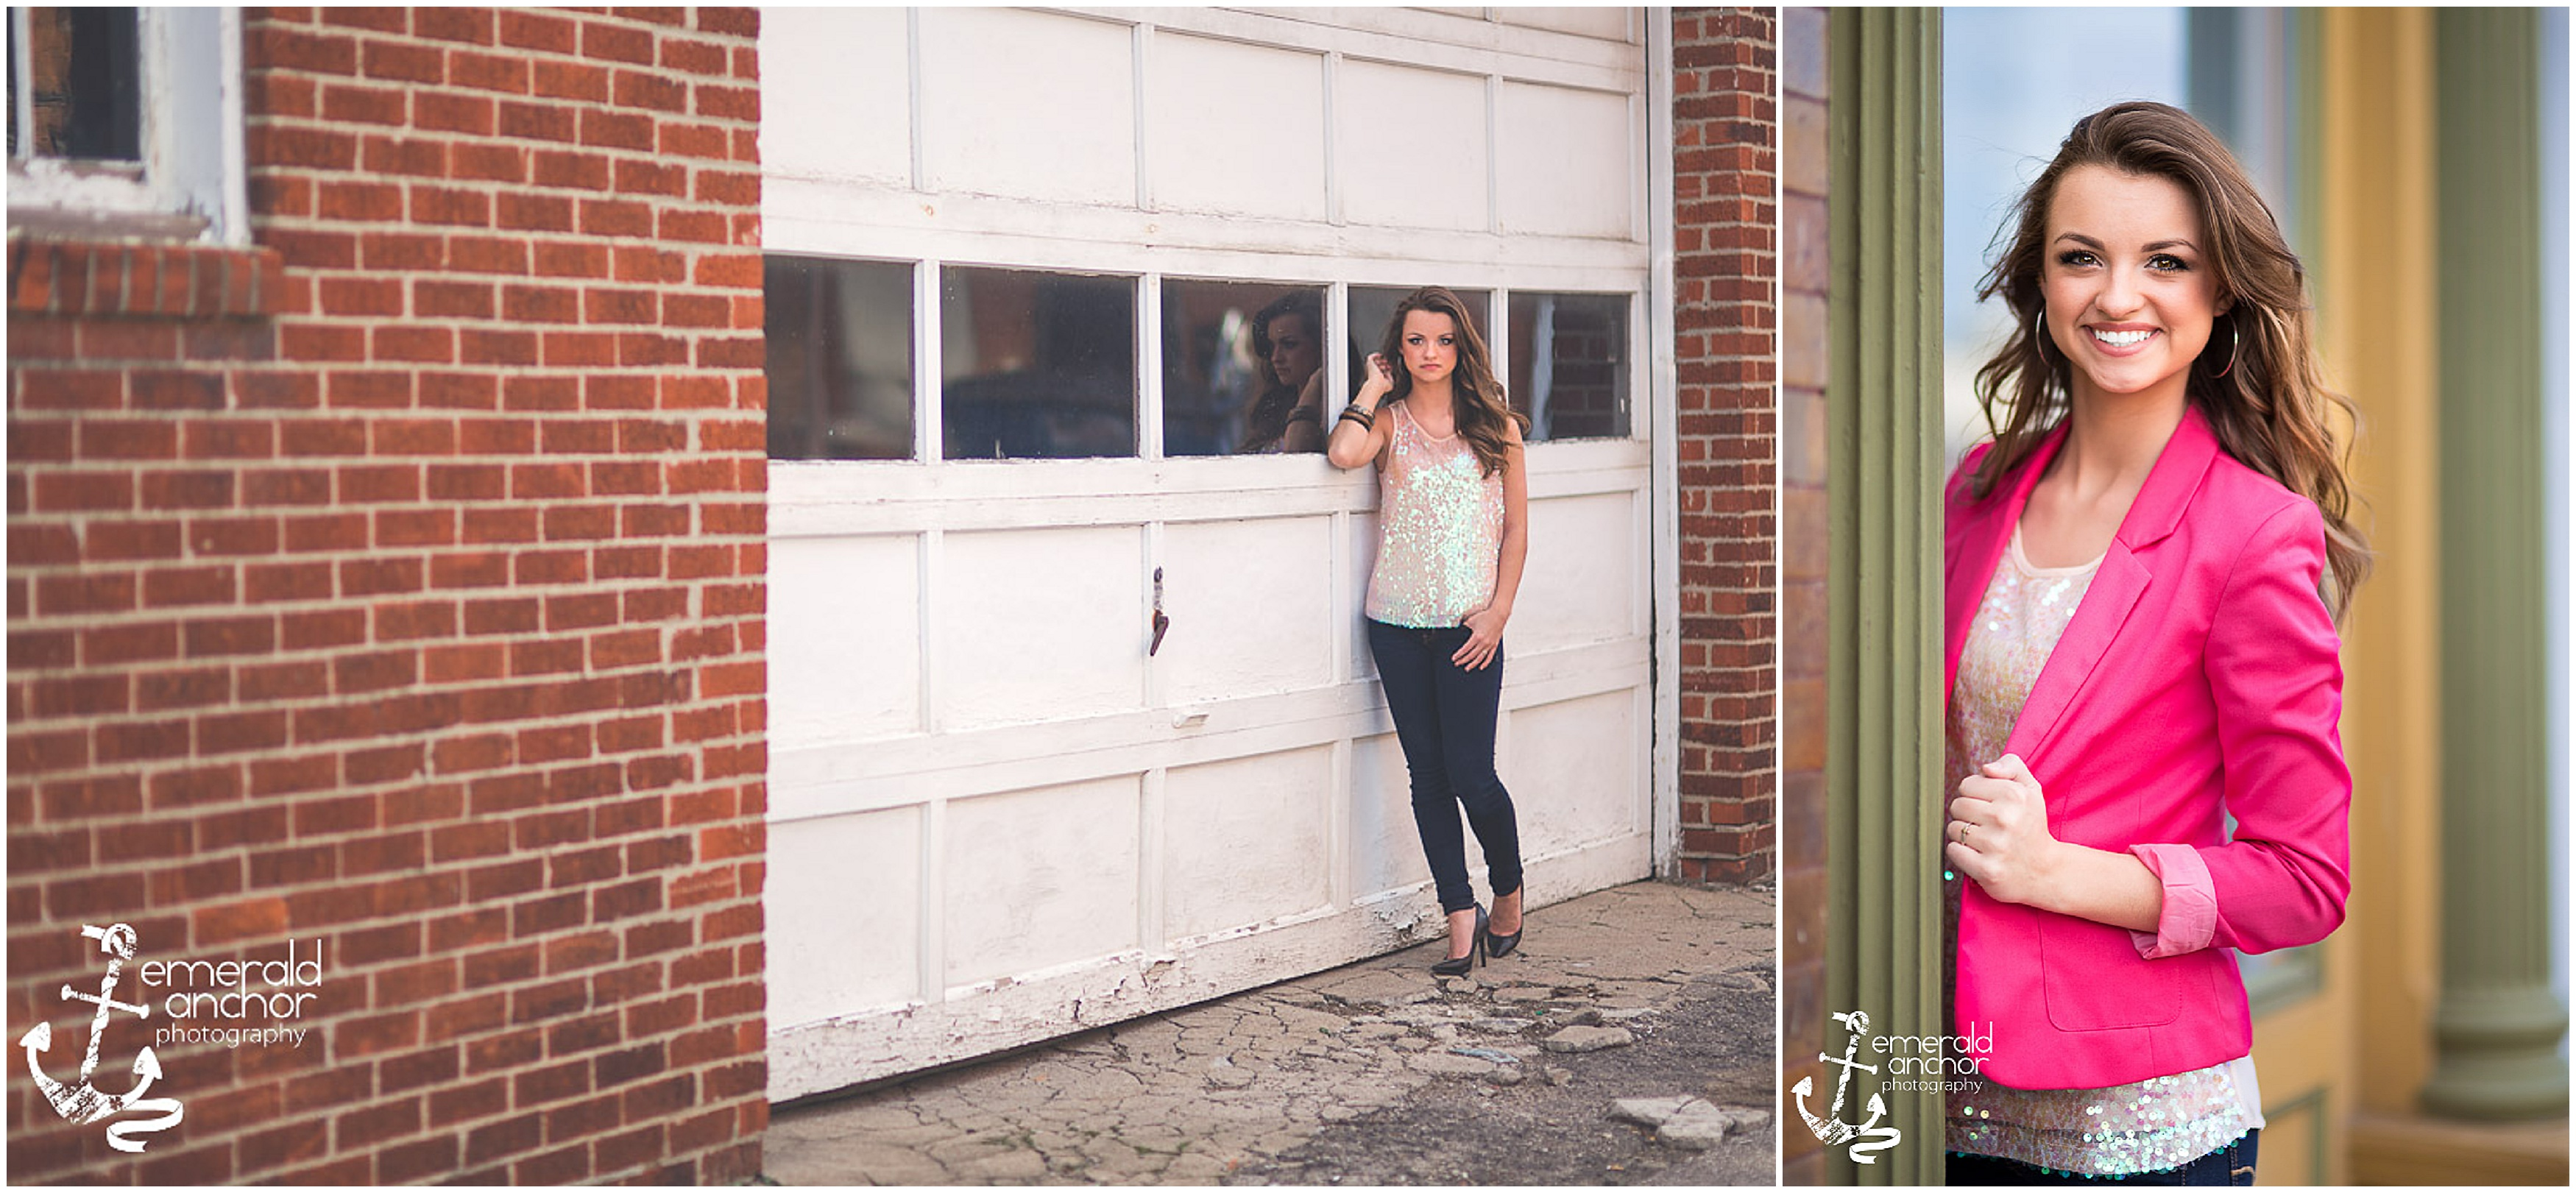 Emerald Anchor Photography Senior Pictures